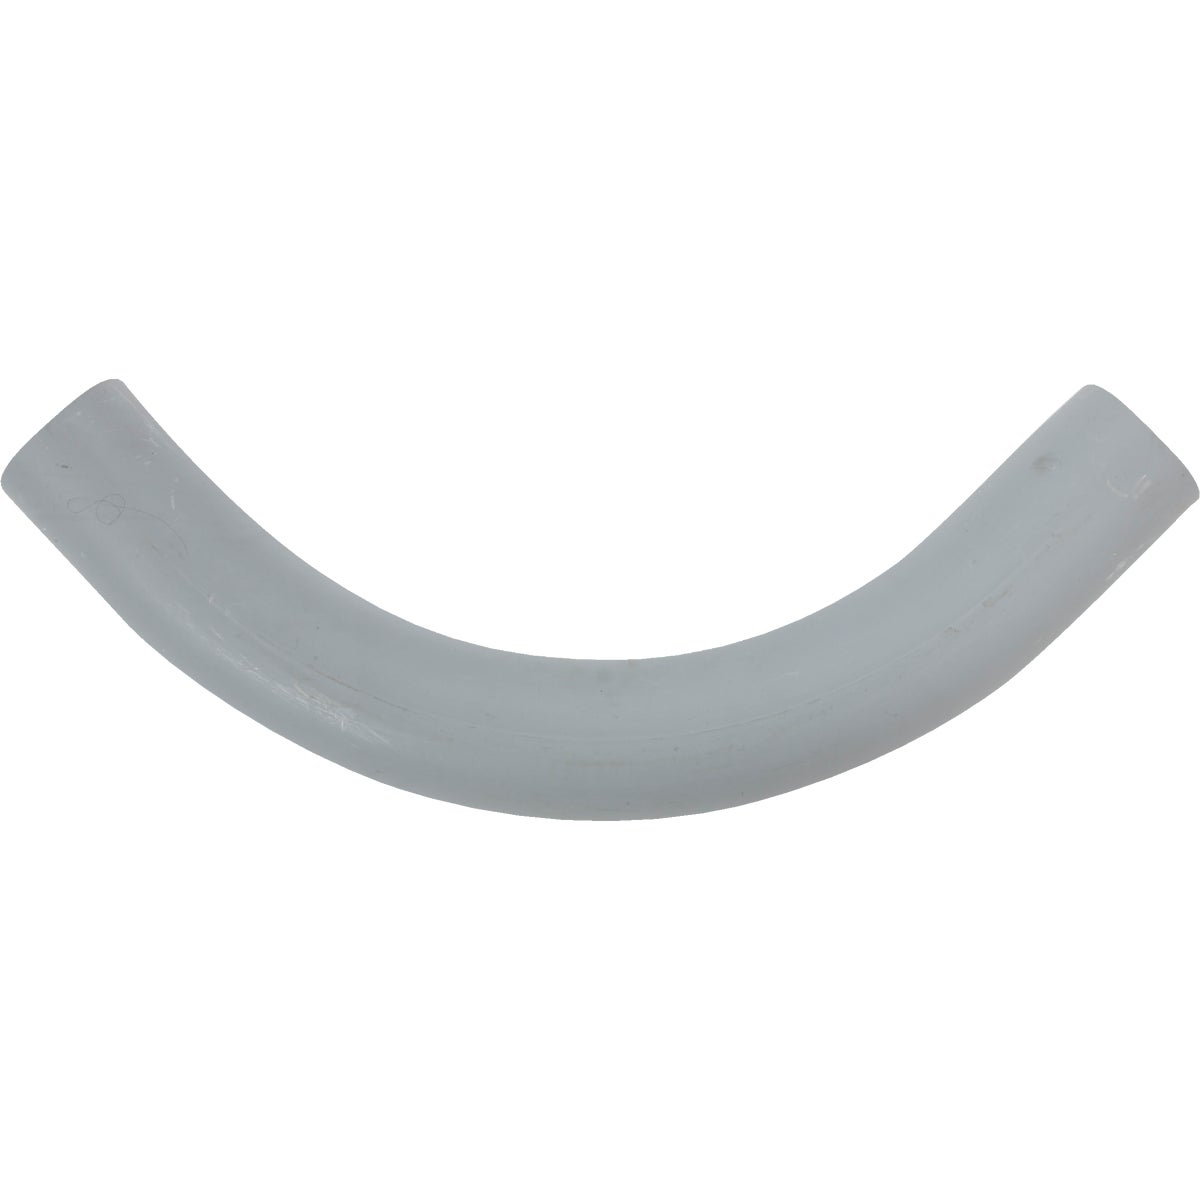 "3"" 90 DEGREE PVC ELBOW - UA9ALCAR by Thomas & Betts"